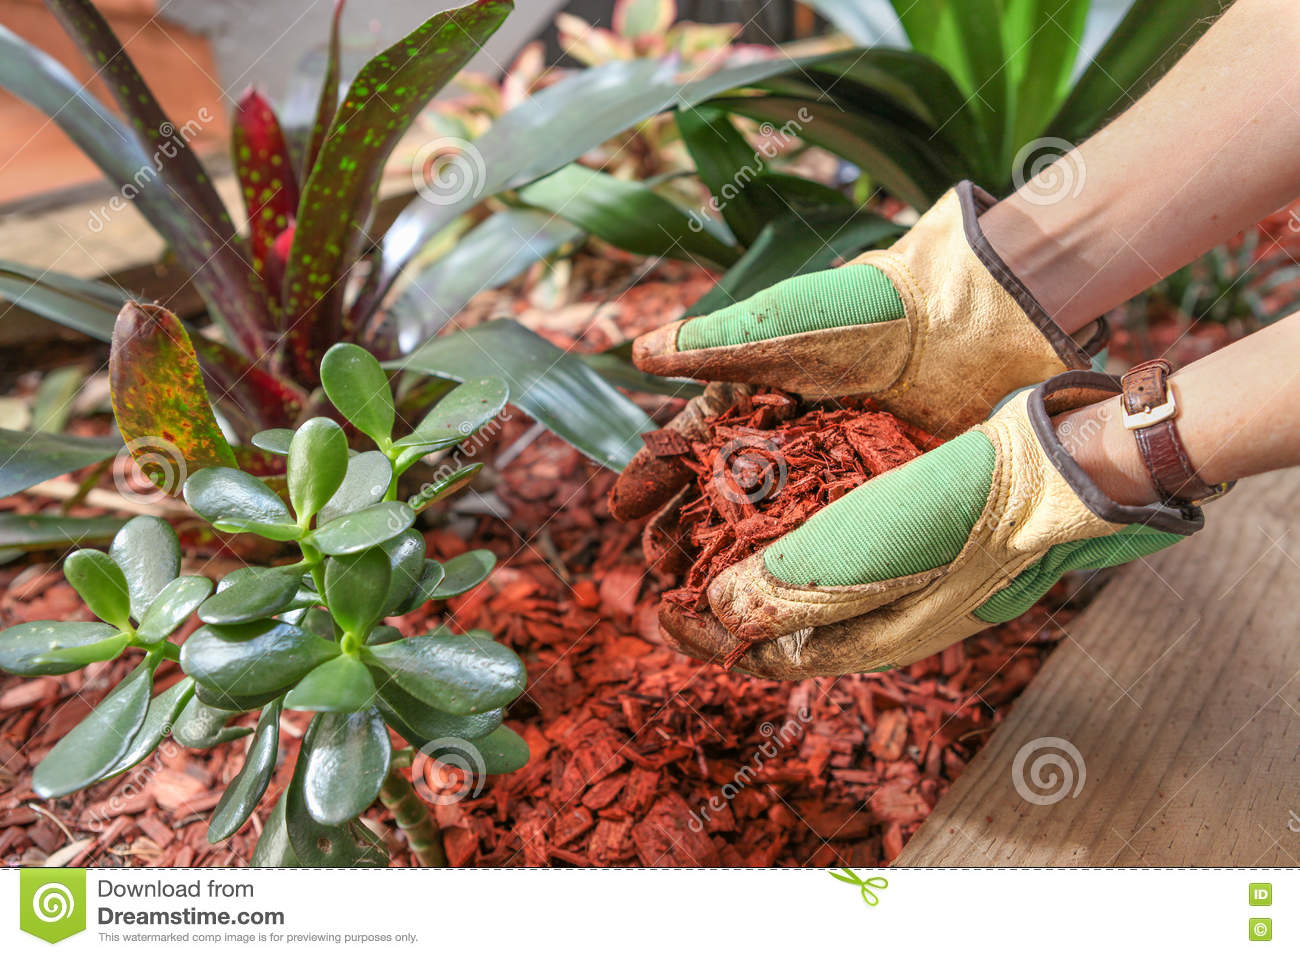 Gardening And Preparing The Garden Beds With A Red Cedar Wood Chip